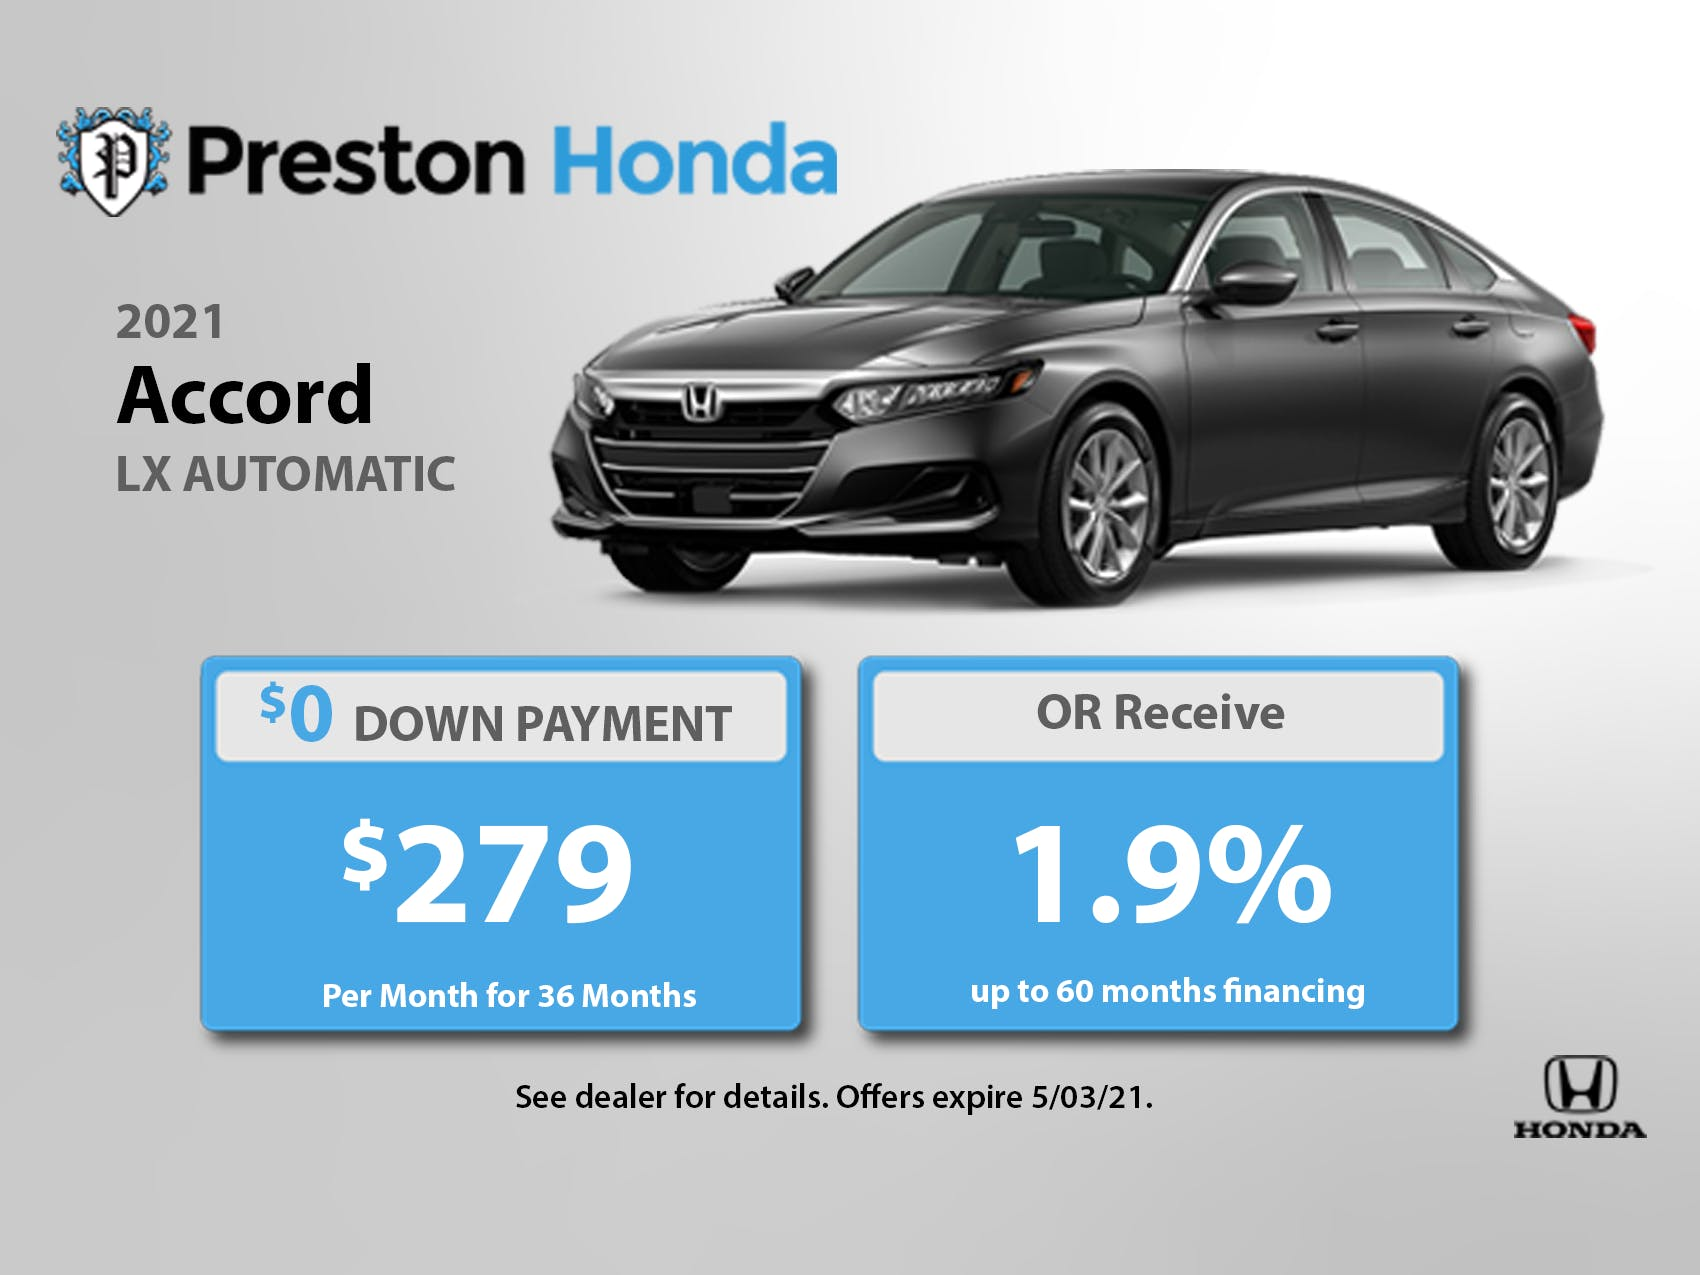 2021 Accord Sale